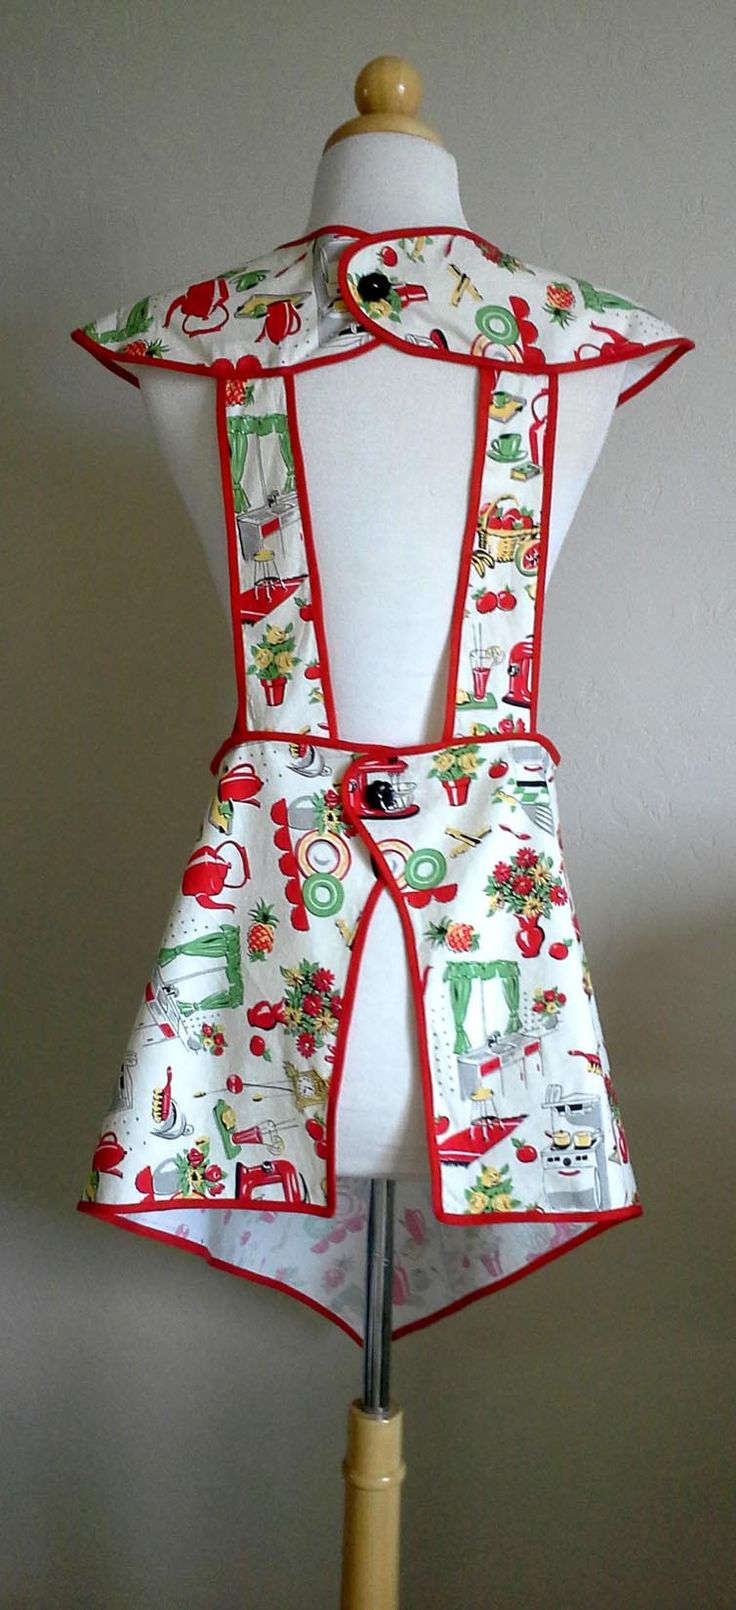 Best 25 Homemade Aprons Ideas On Pinterest Easy Apron